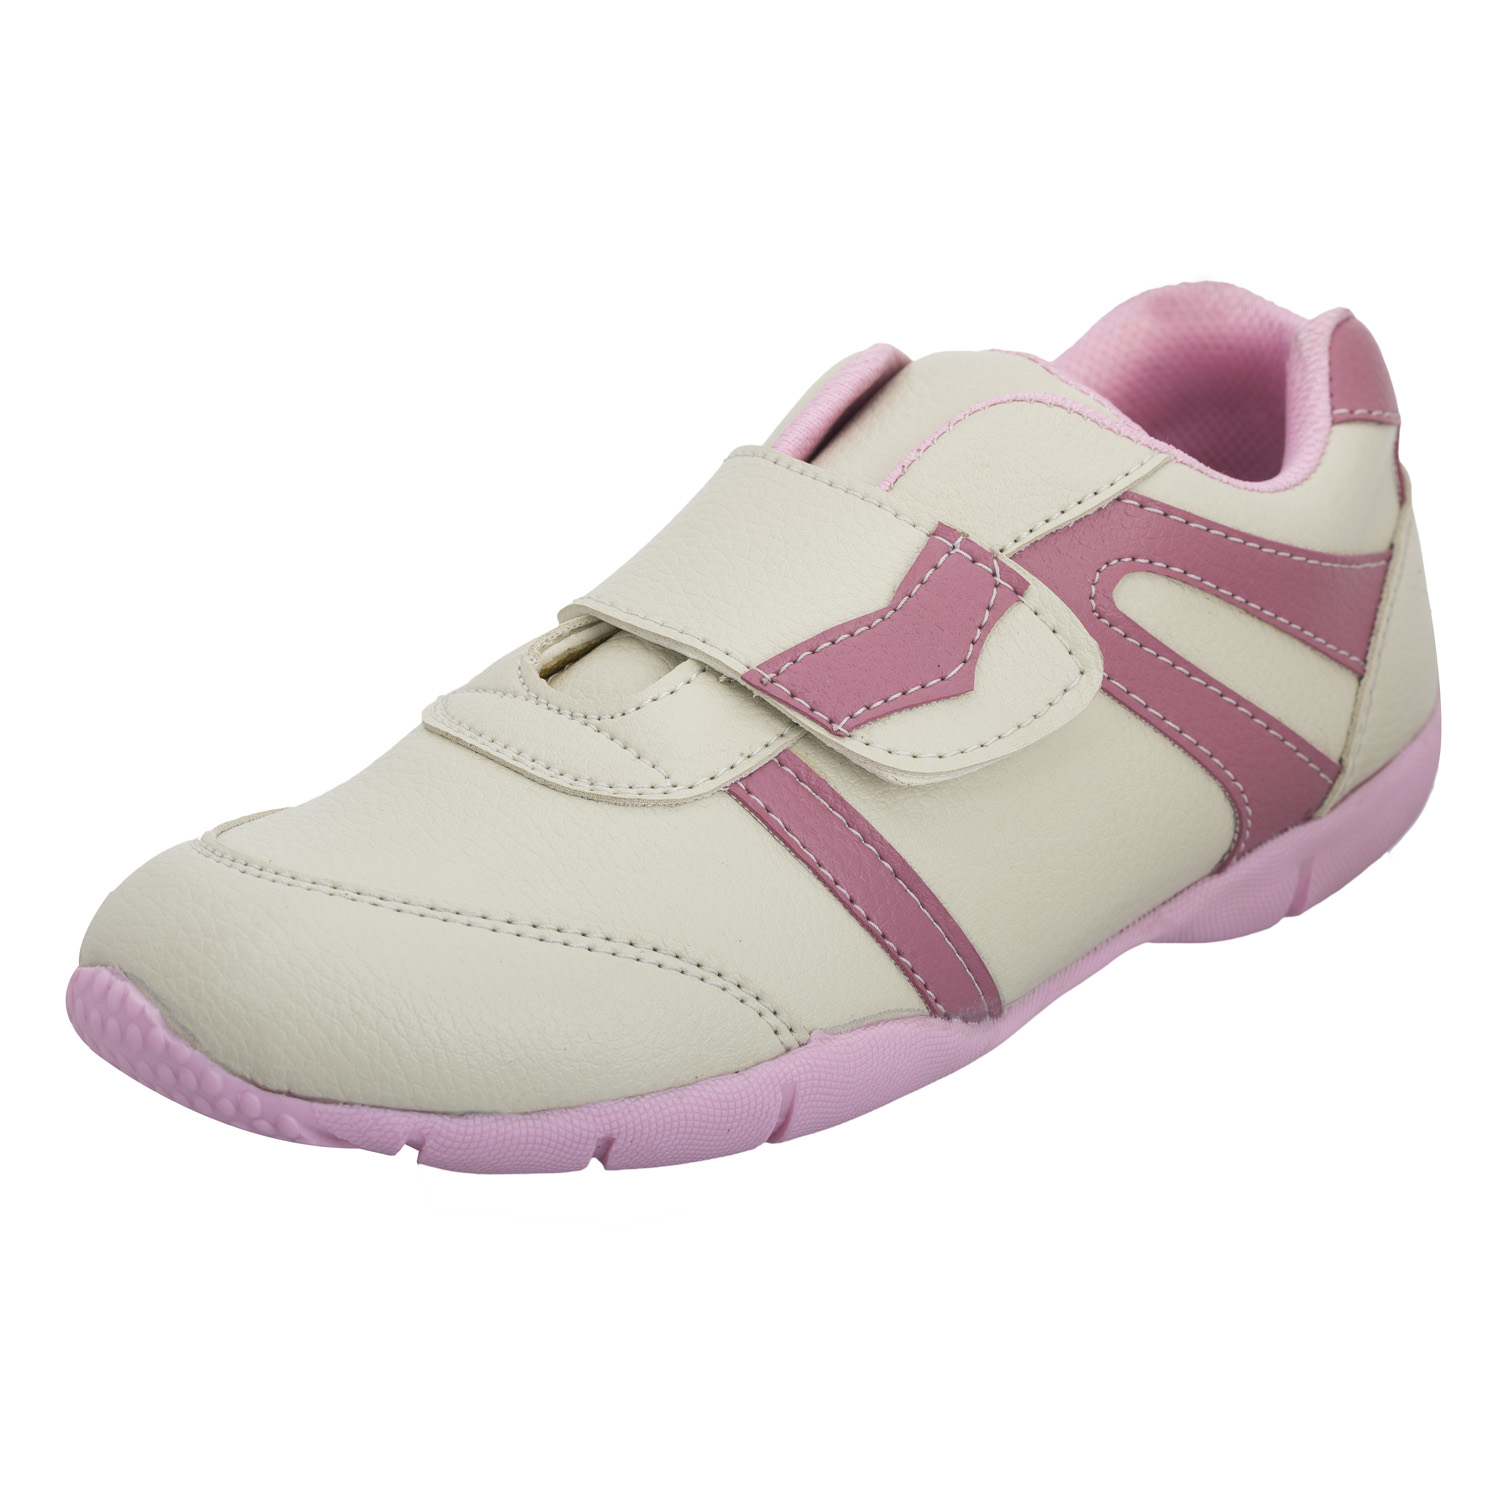 Advin England Cream/Pink Velcro Sports Shoes